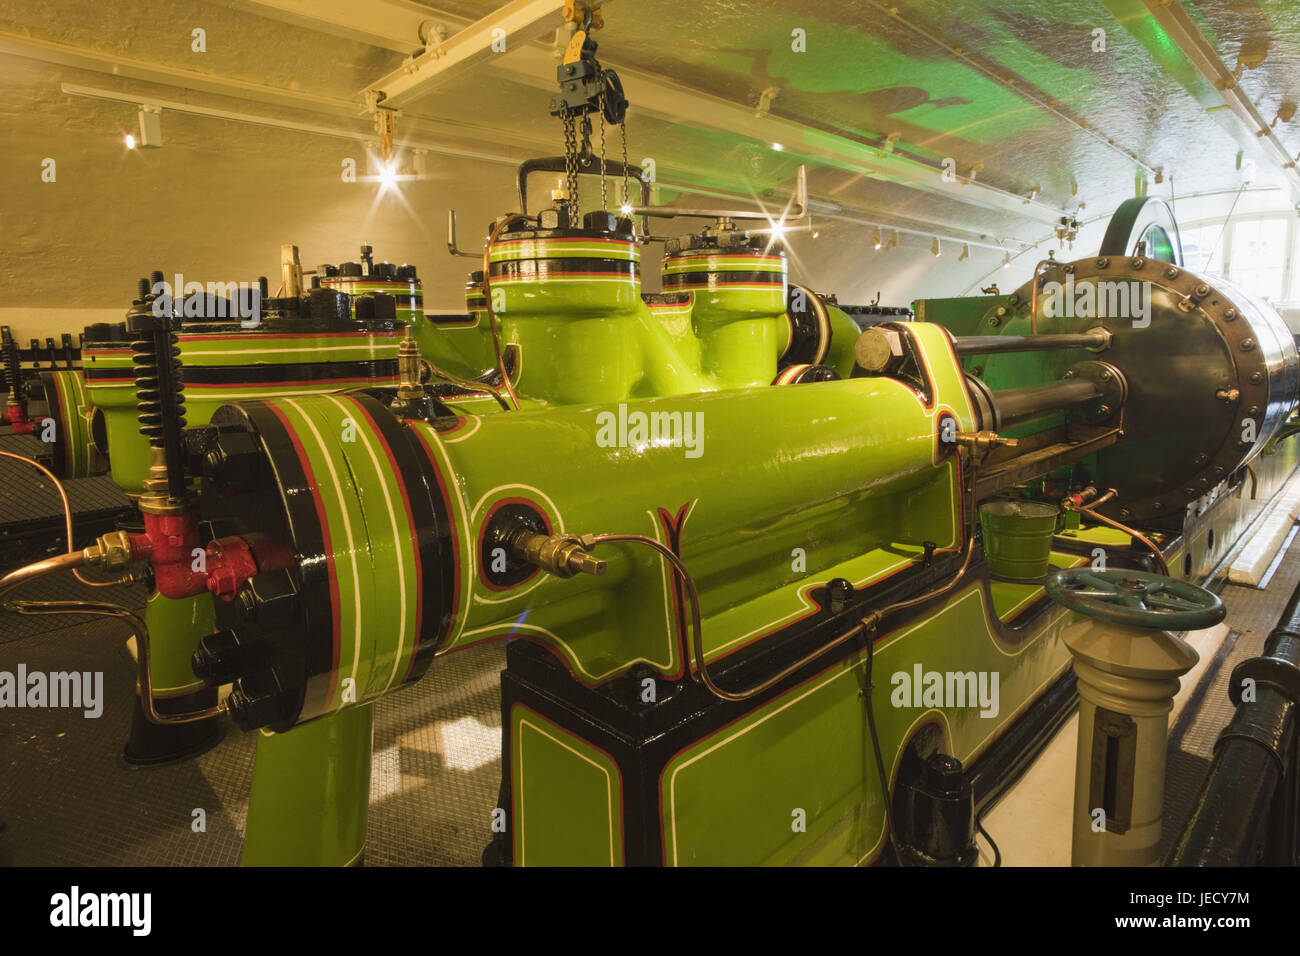 England, London, Tower Bridge, engine room, hydraulics capacity machine, architecture, machine, technology, inside, - Stock Image